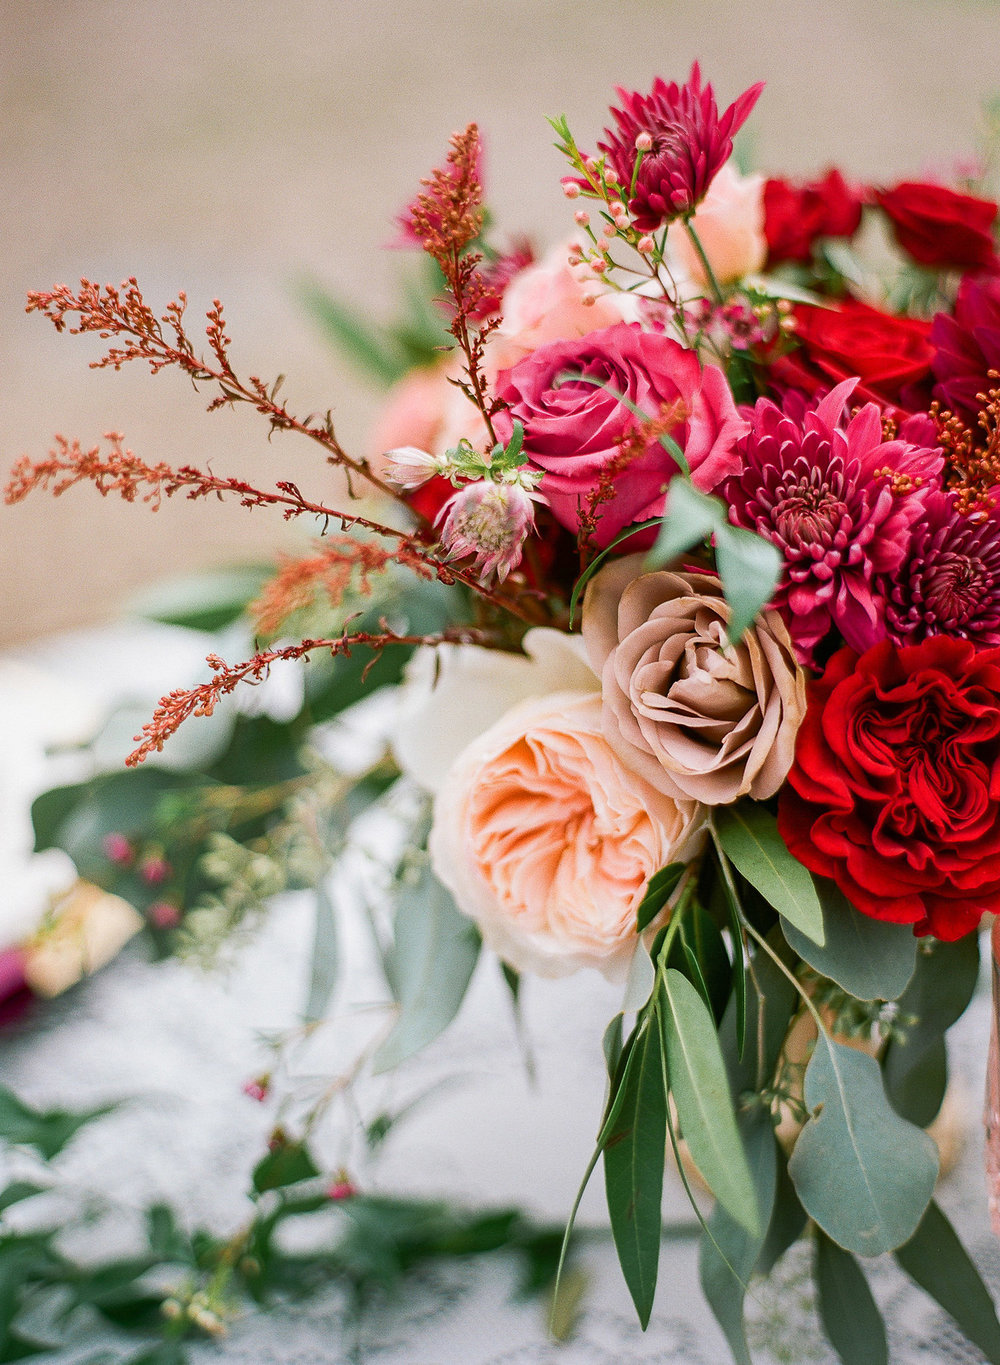 Burgundy, Mauve and Peach Florals